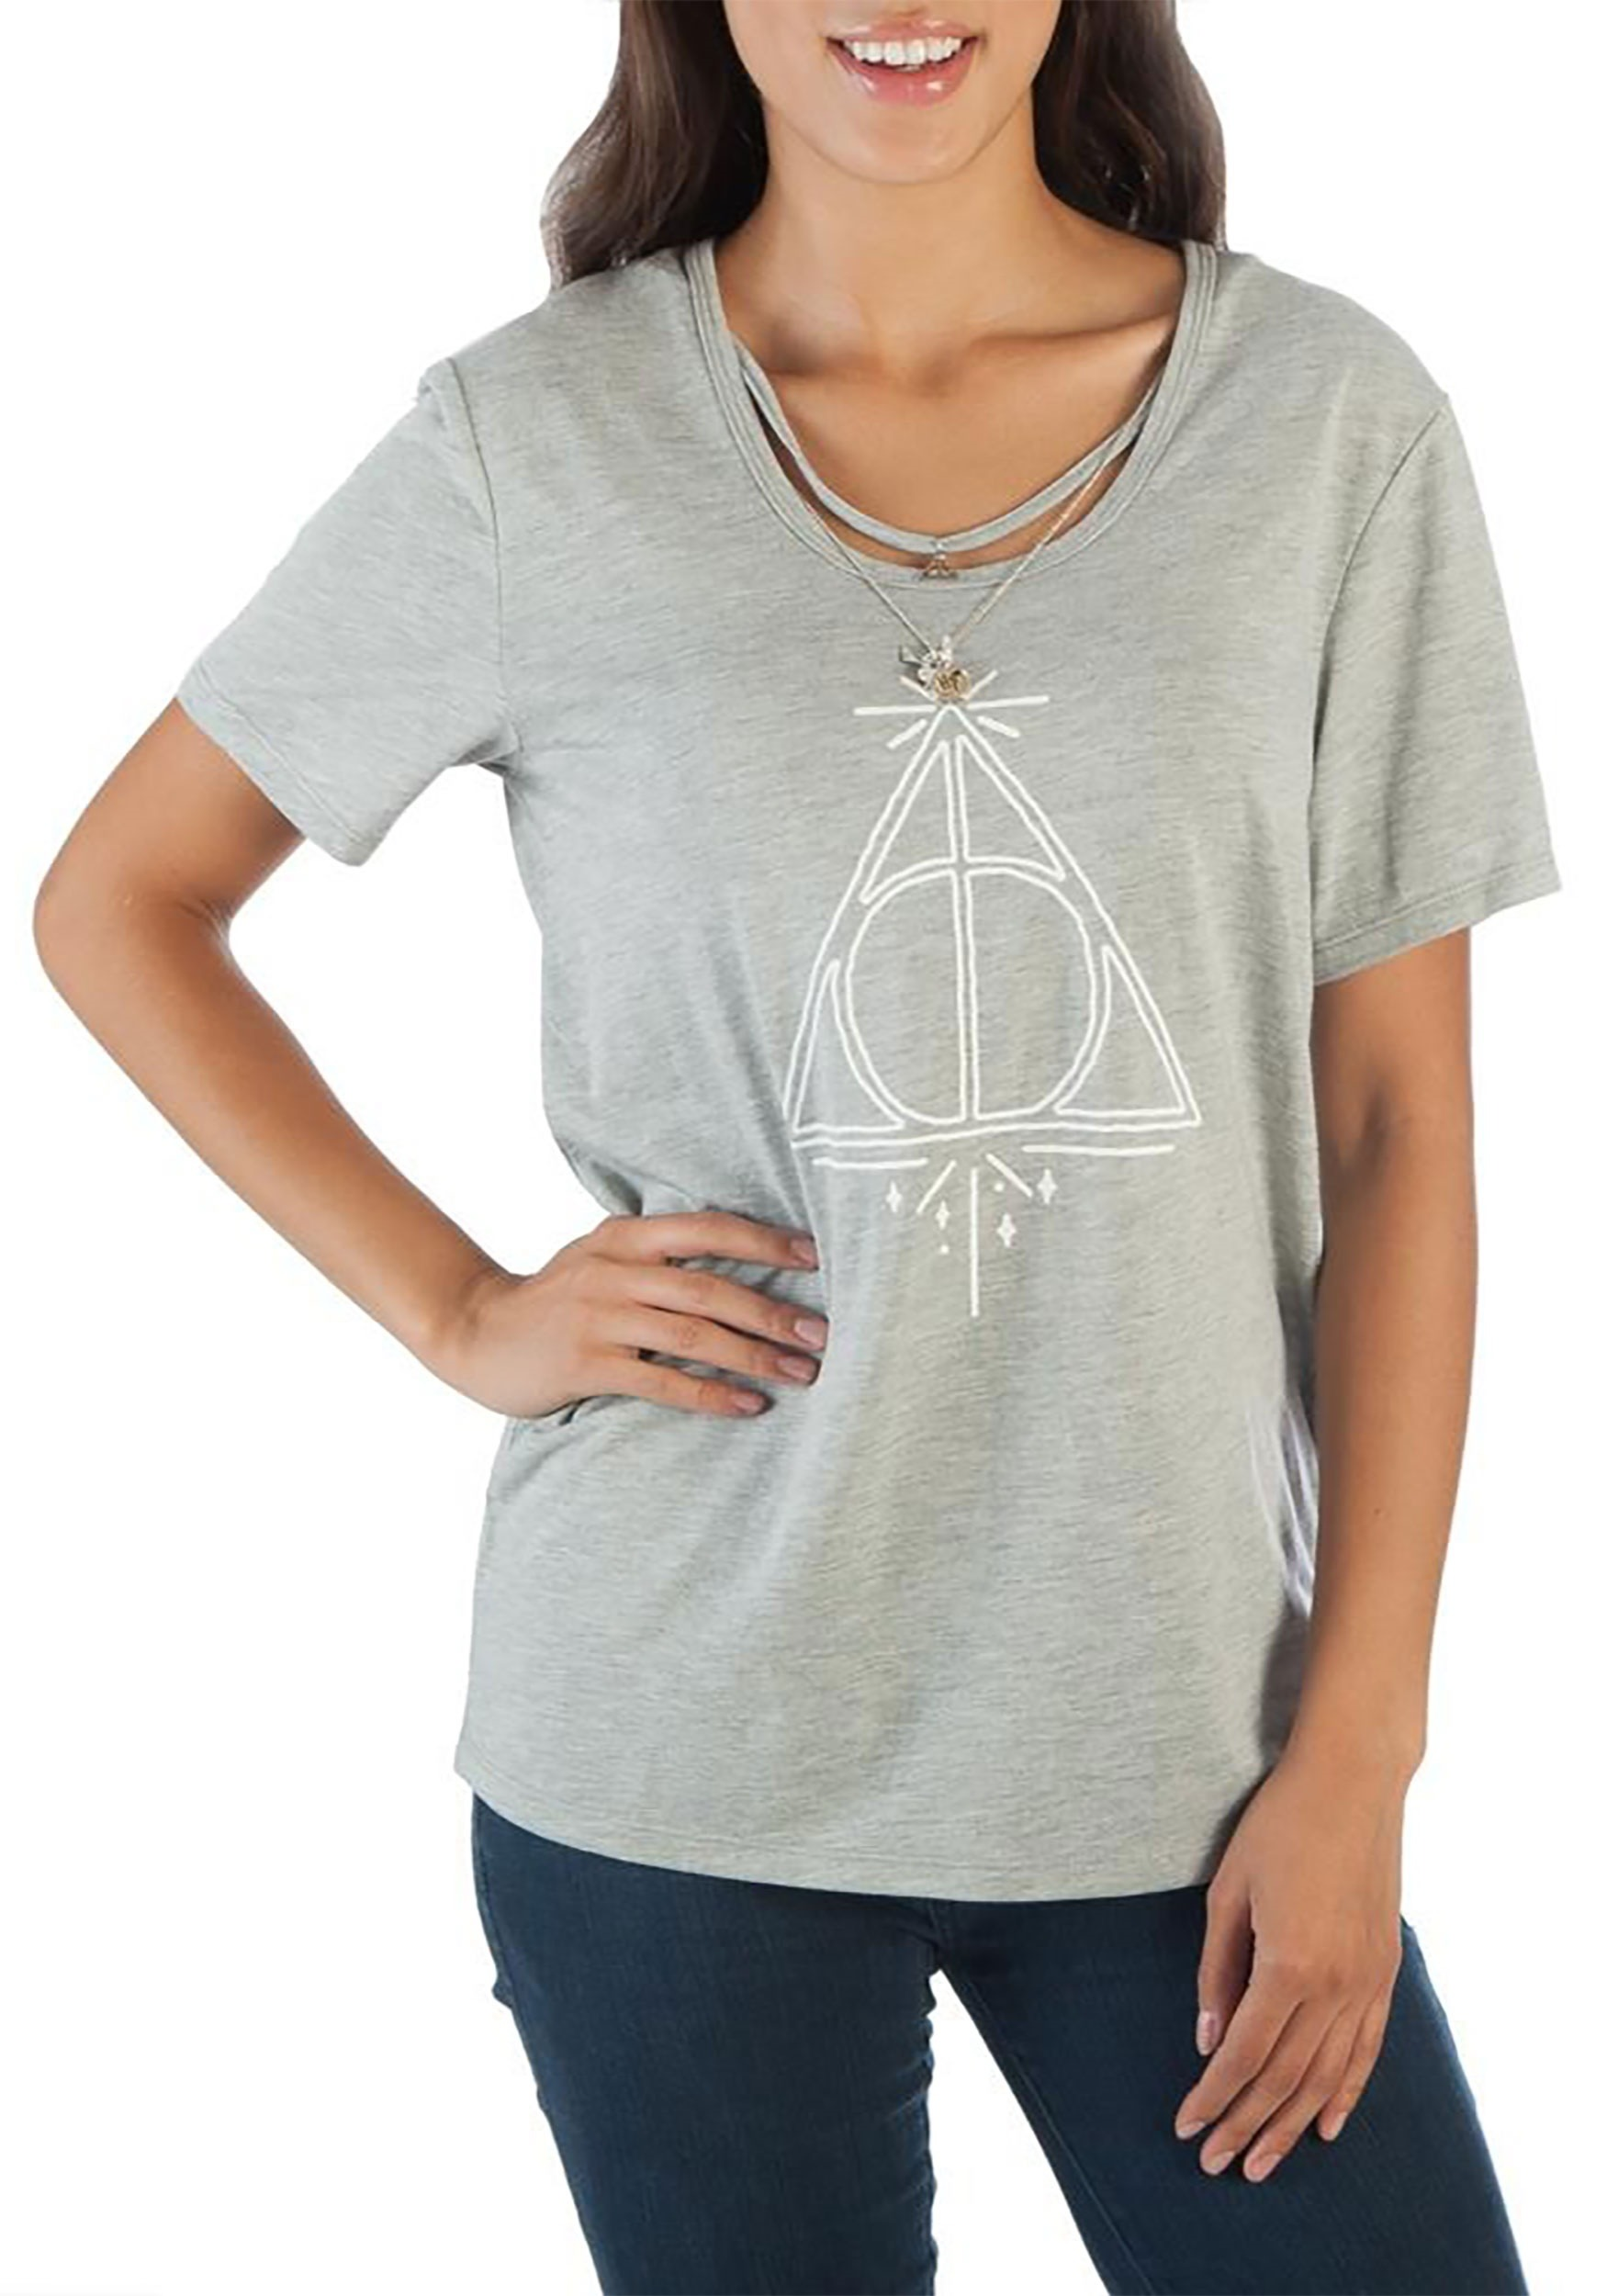 Harry Potter Deathly Hallows Women's T-Shirt with Interchangeable Charm Necklace